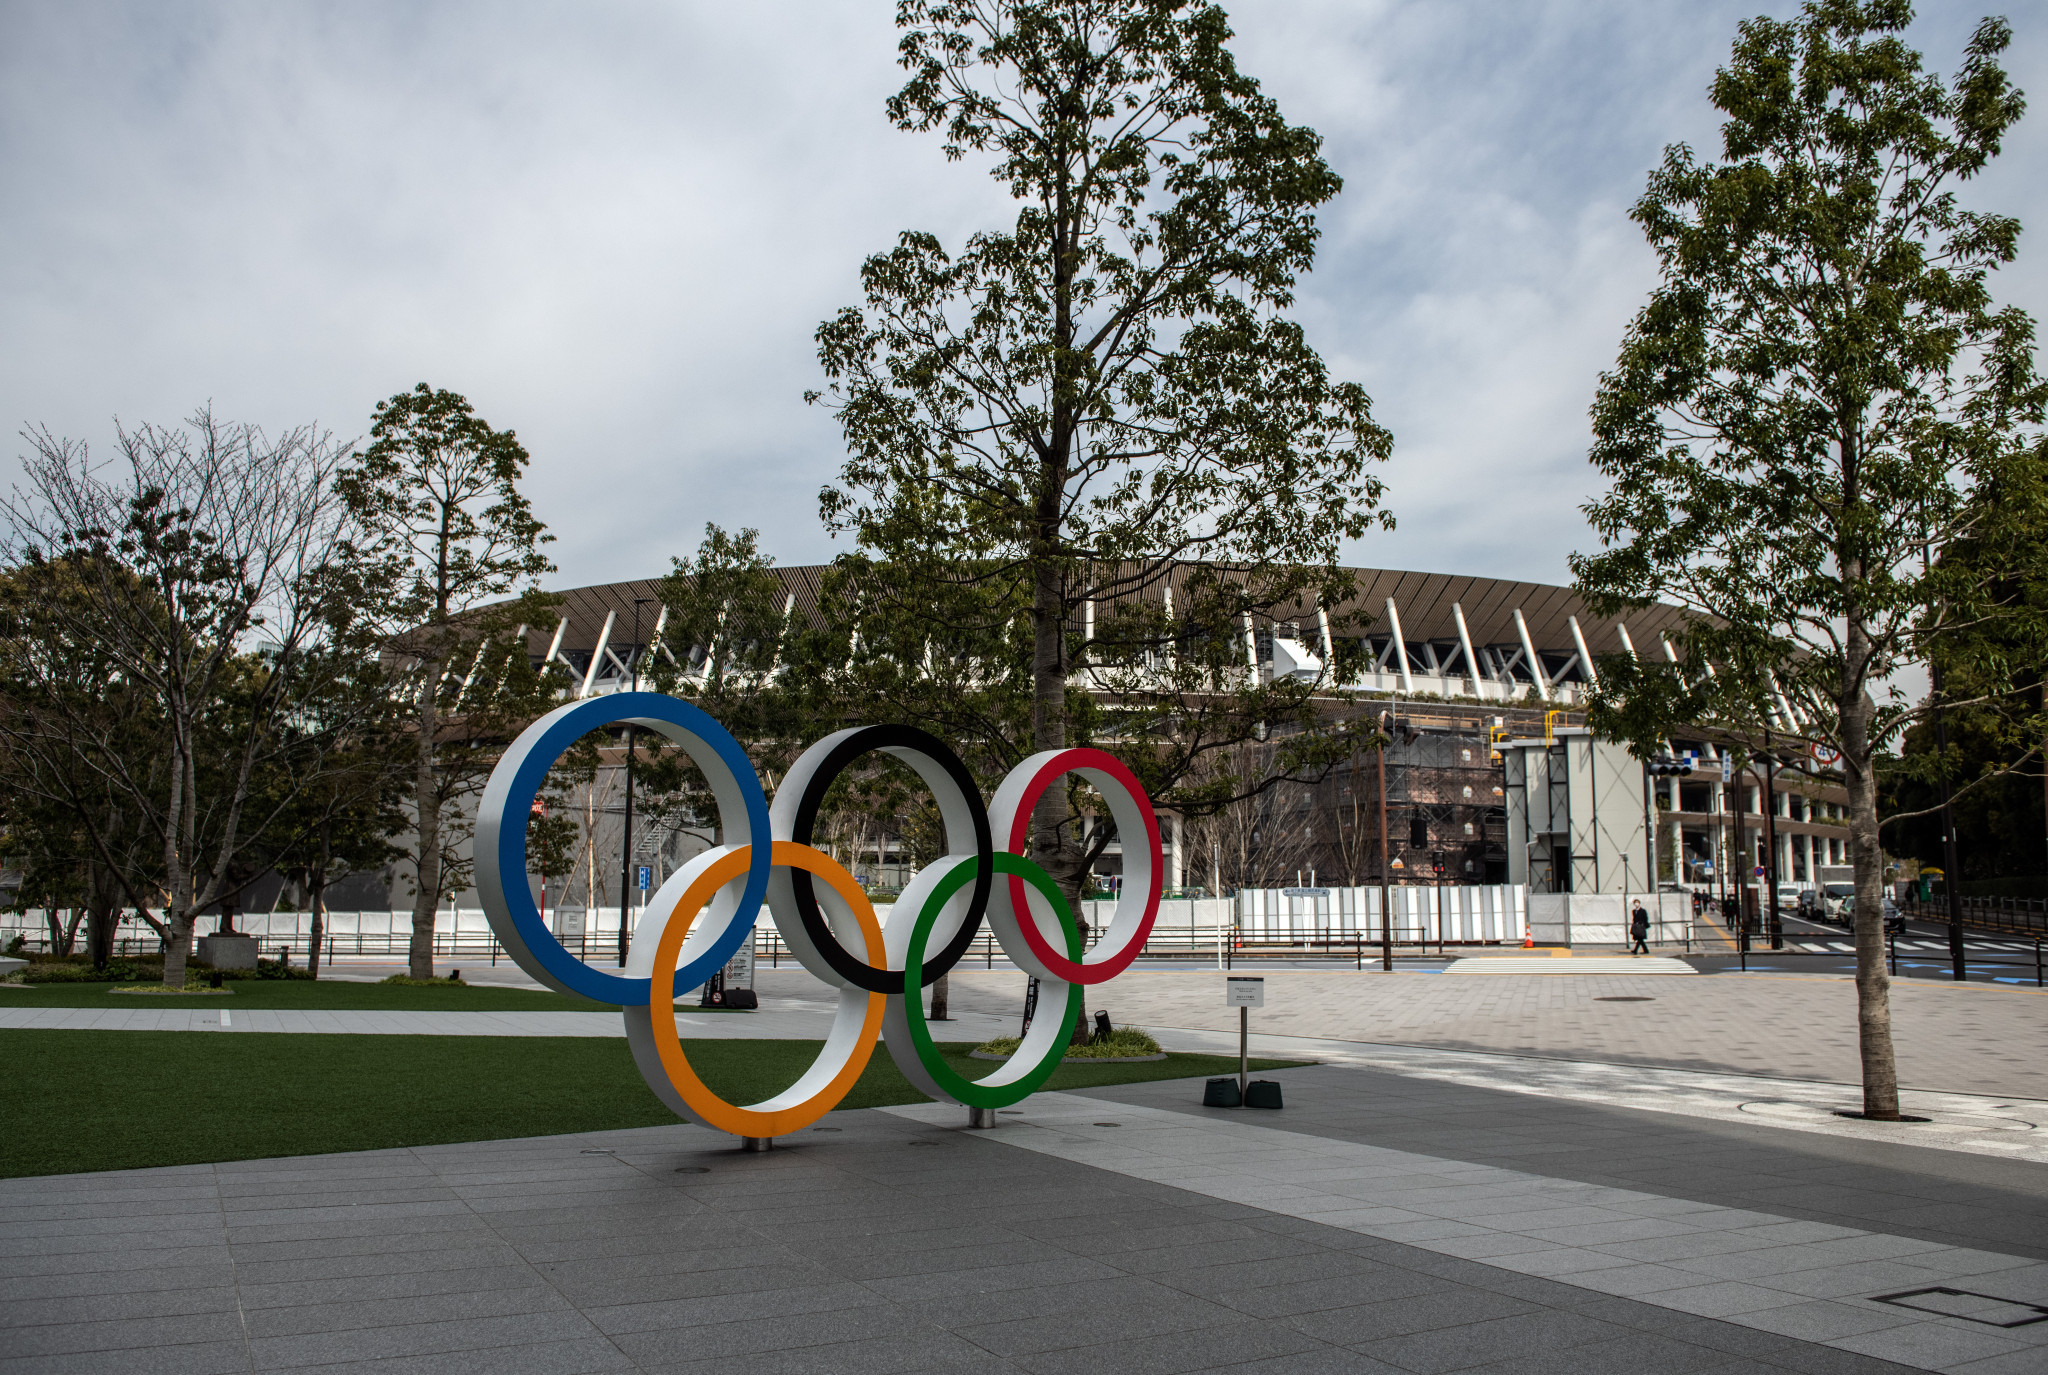 Tokyo 2020 and the IOC have repeatedly insisted the Games will go ahead despite the outbreak ©Getty Images